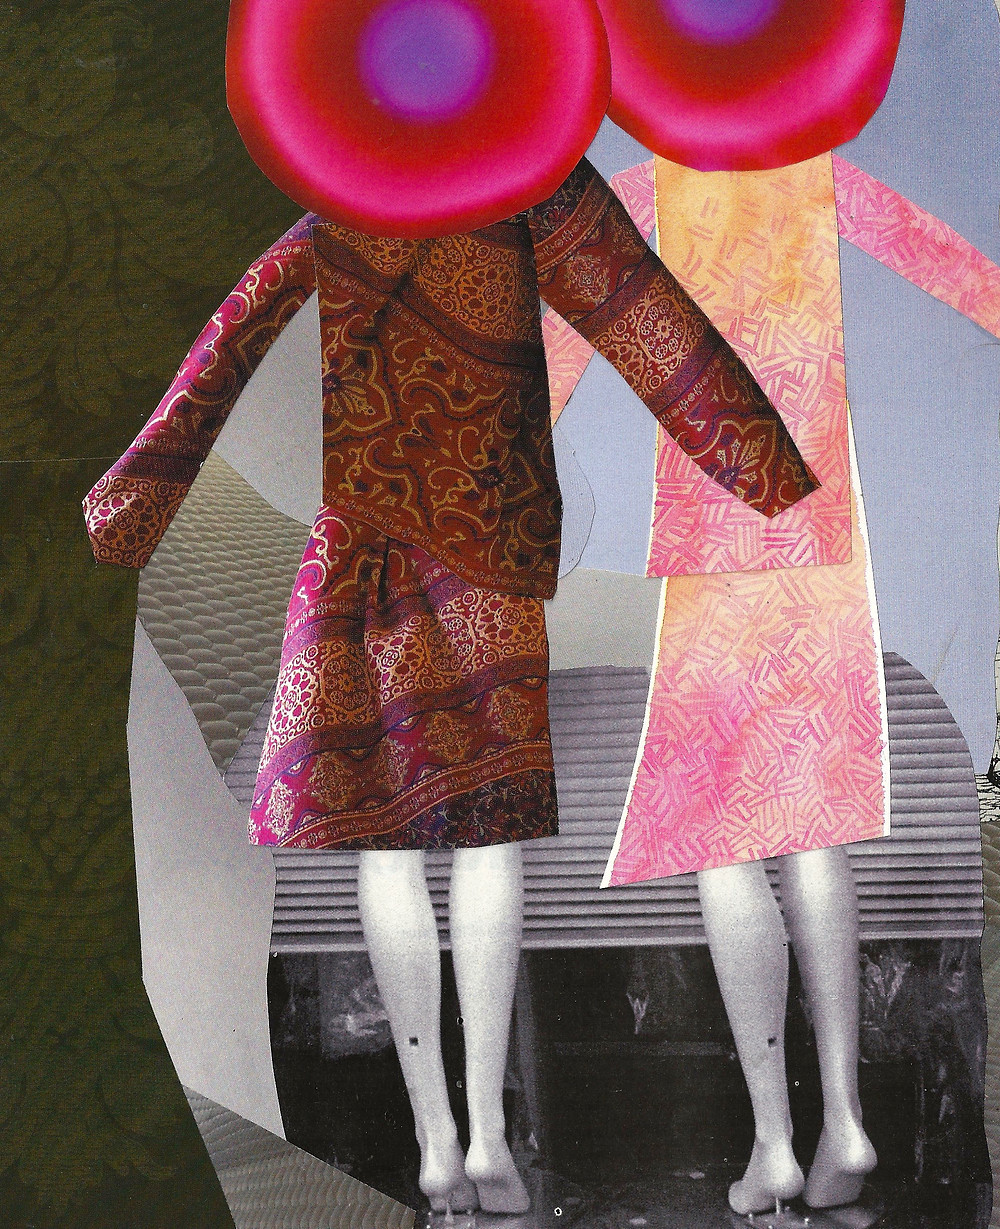 Pink Hats     Collage by Martha Clark Scala